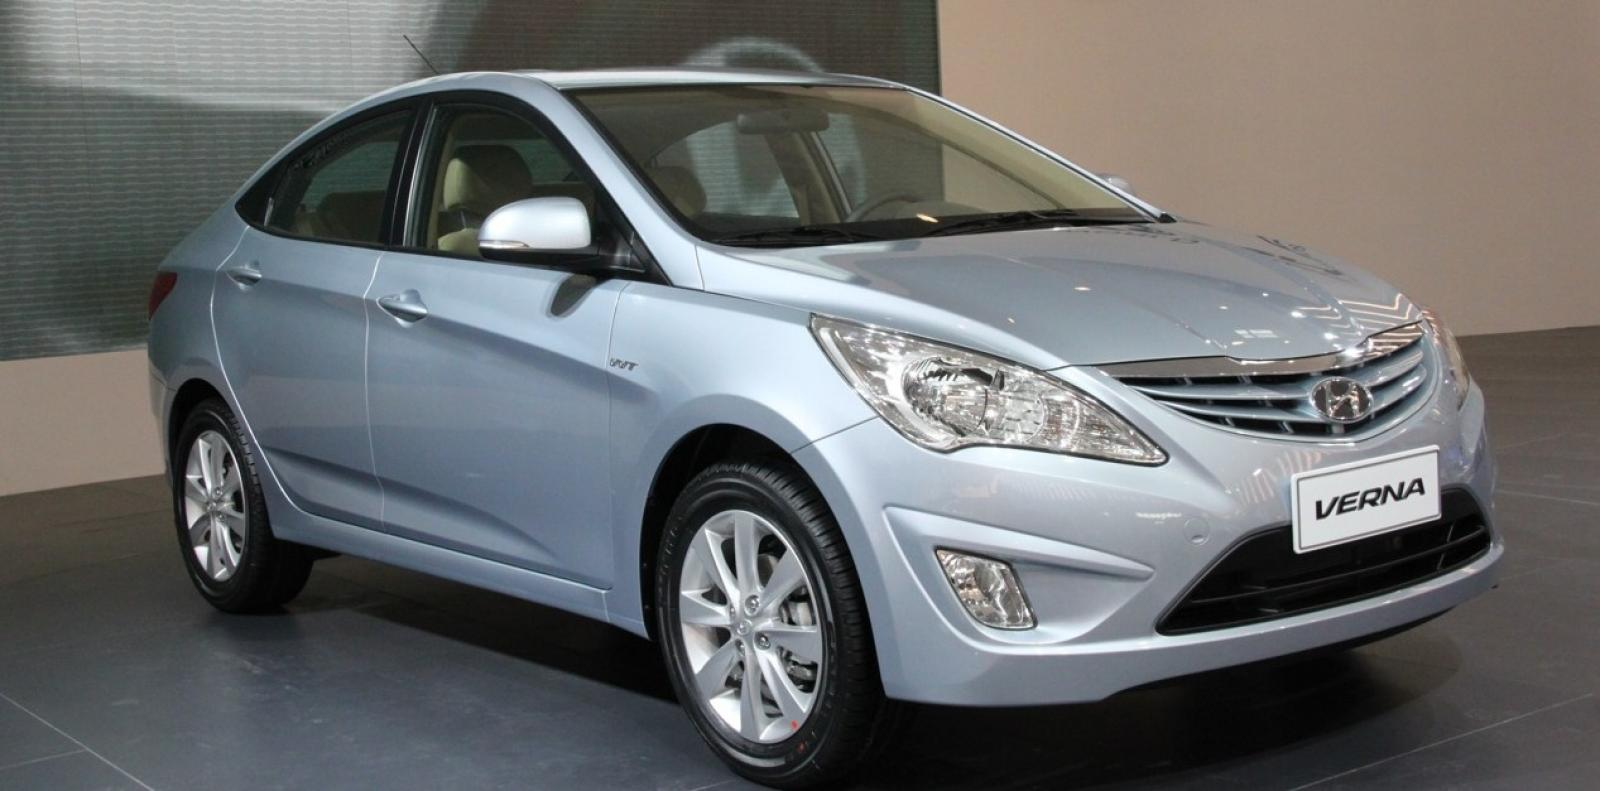 2011 hyundai accent information and photos zombiedrive. Black Bedroom Furniture Sets. Home Design Ideas